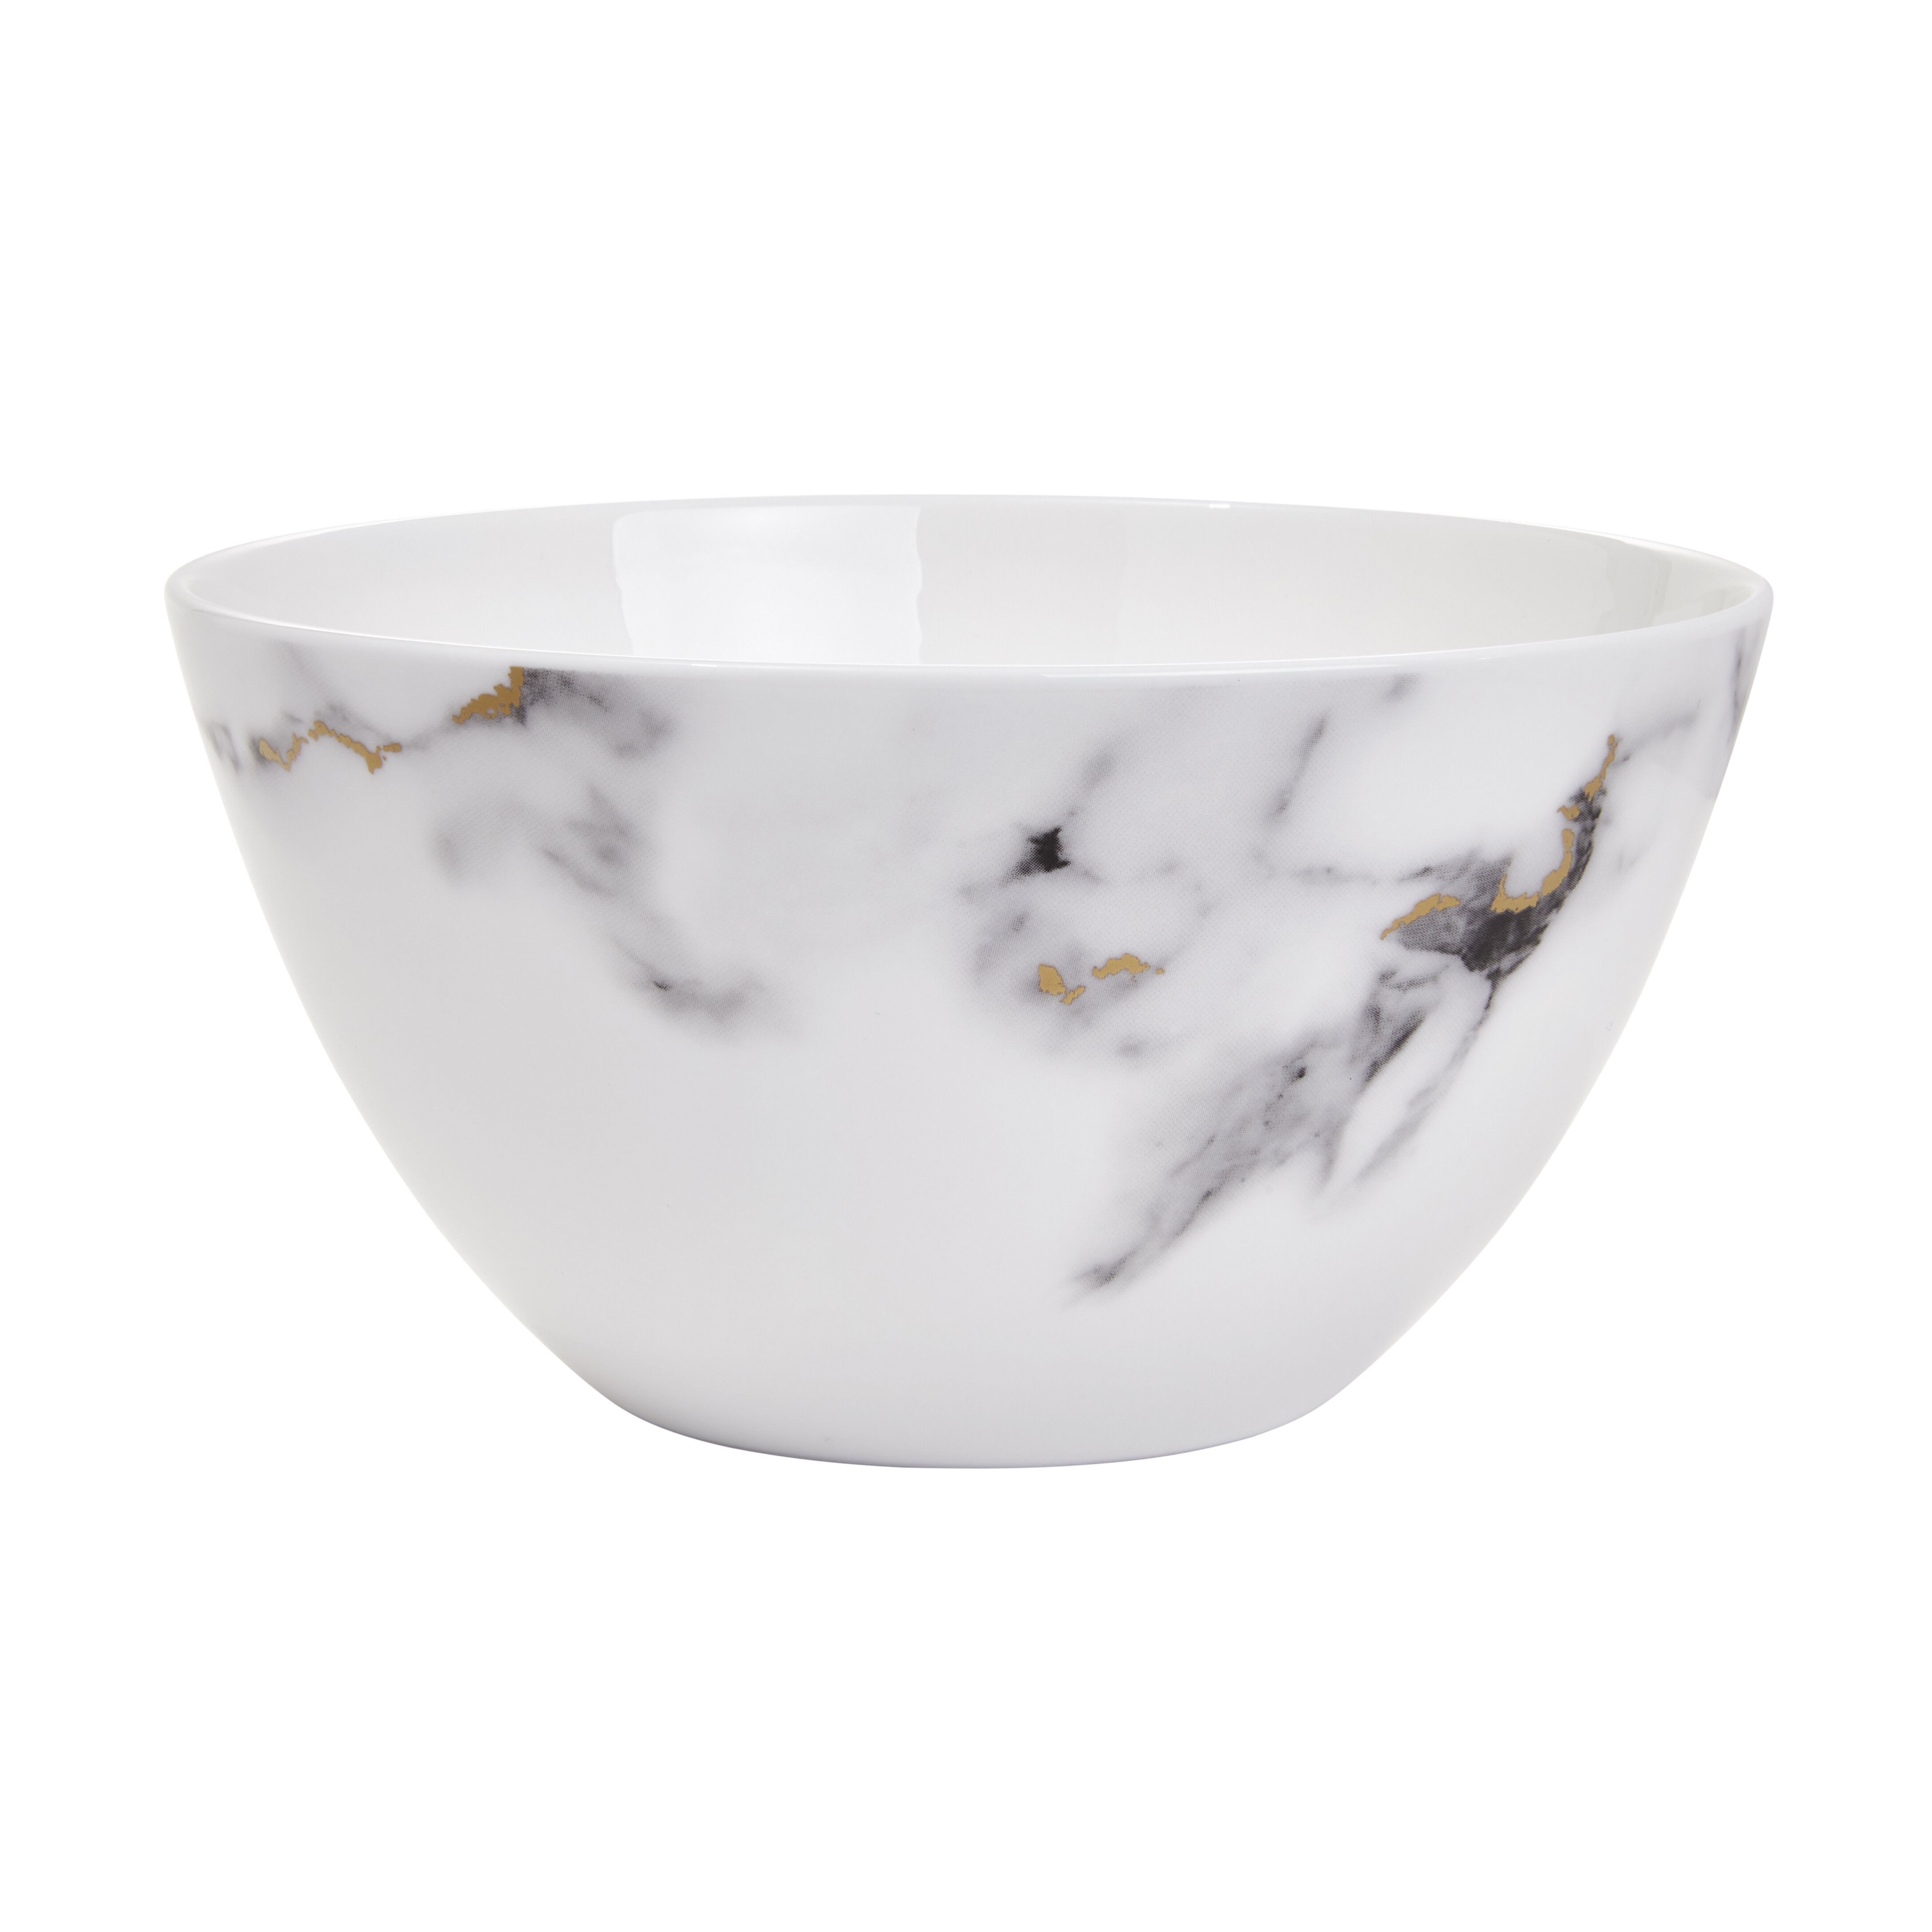 Prouna Dining Bowls You Ll Love In 2021 Wayfair